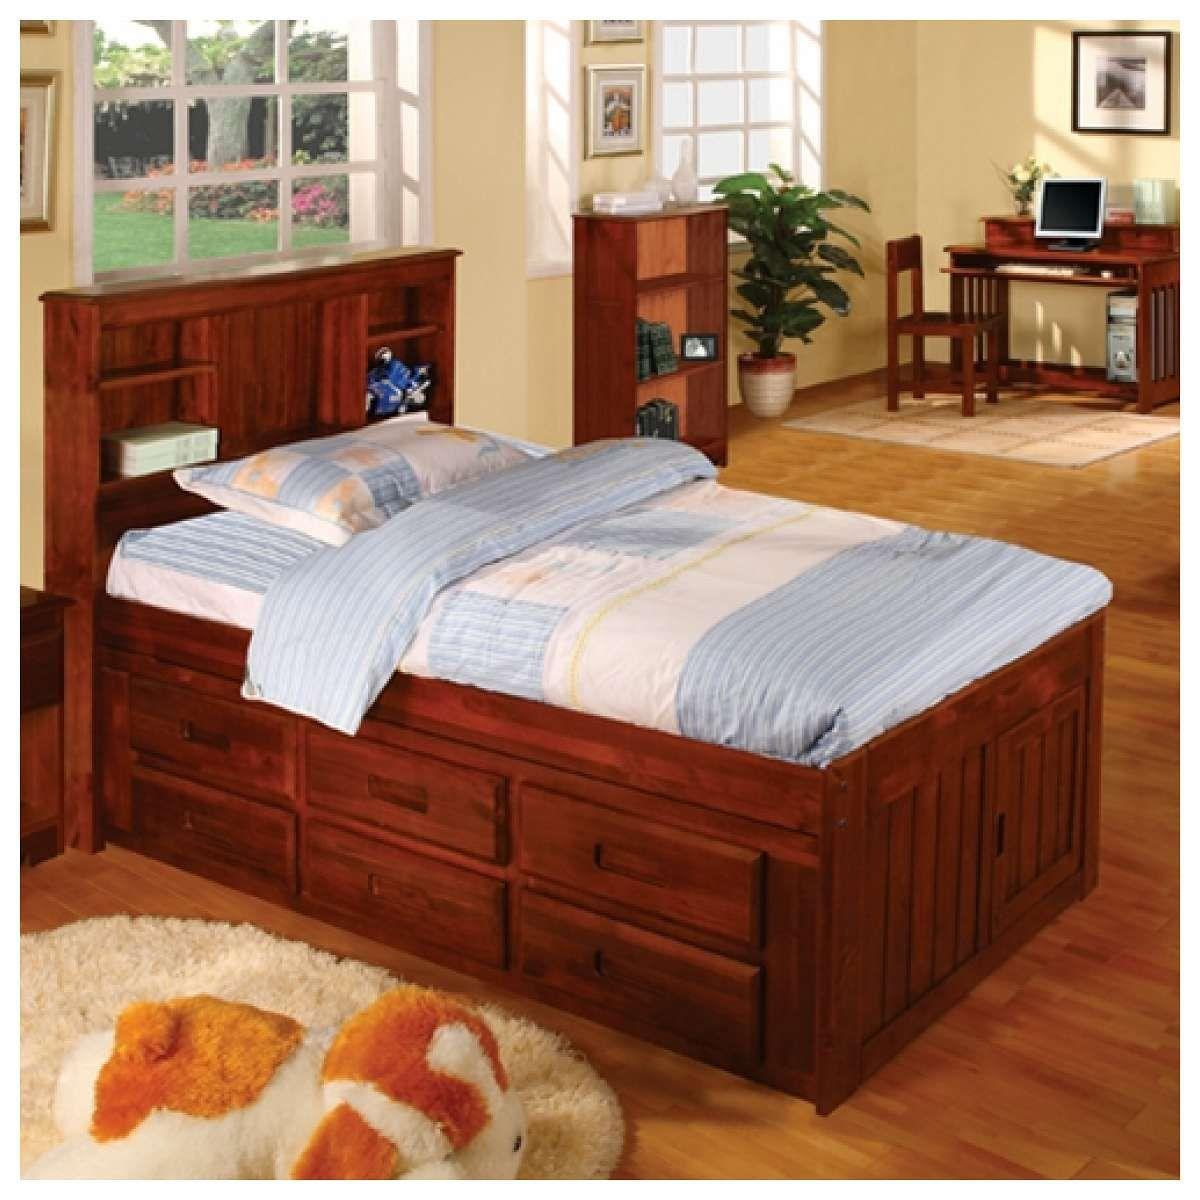 Loft captains bed twin  Discovery World Furniture Merlot Bookcase Captains Bed Twin With